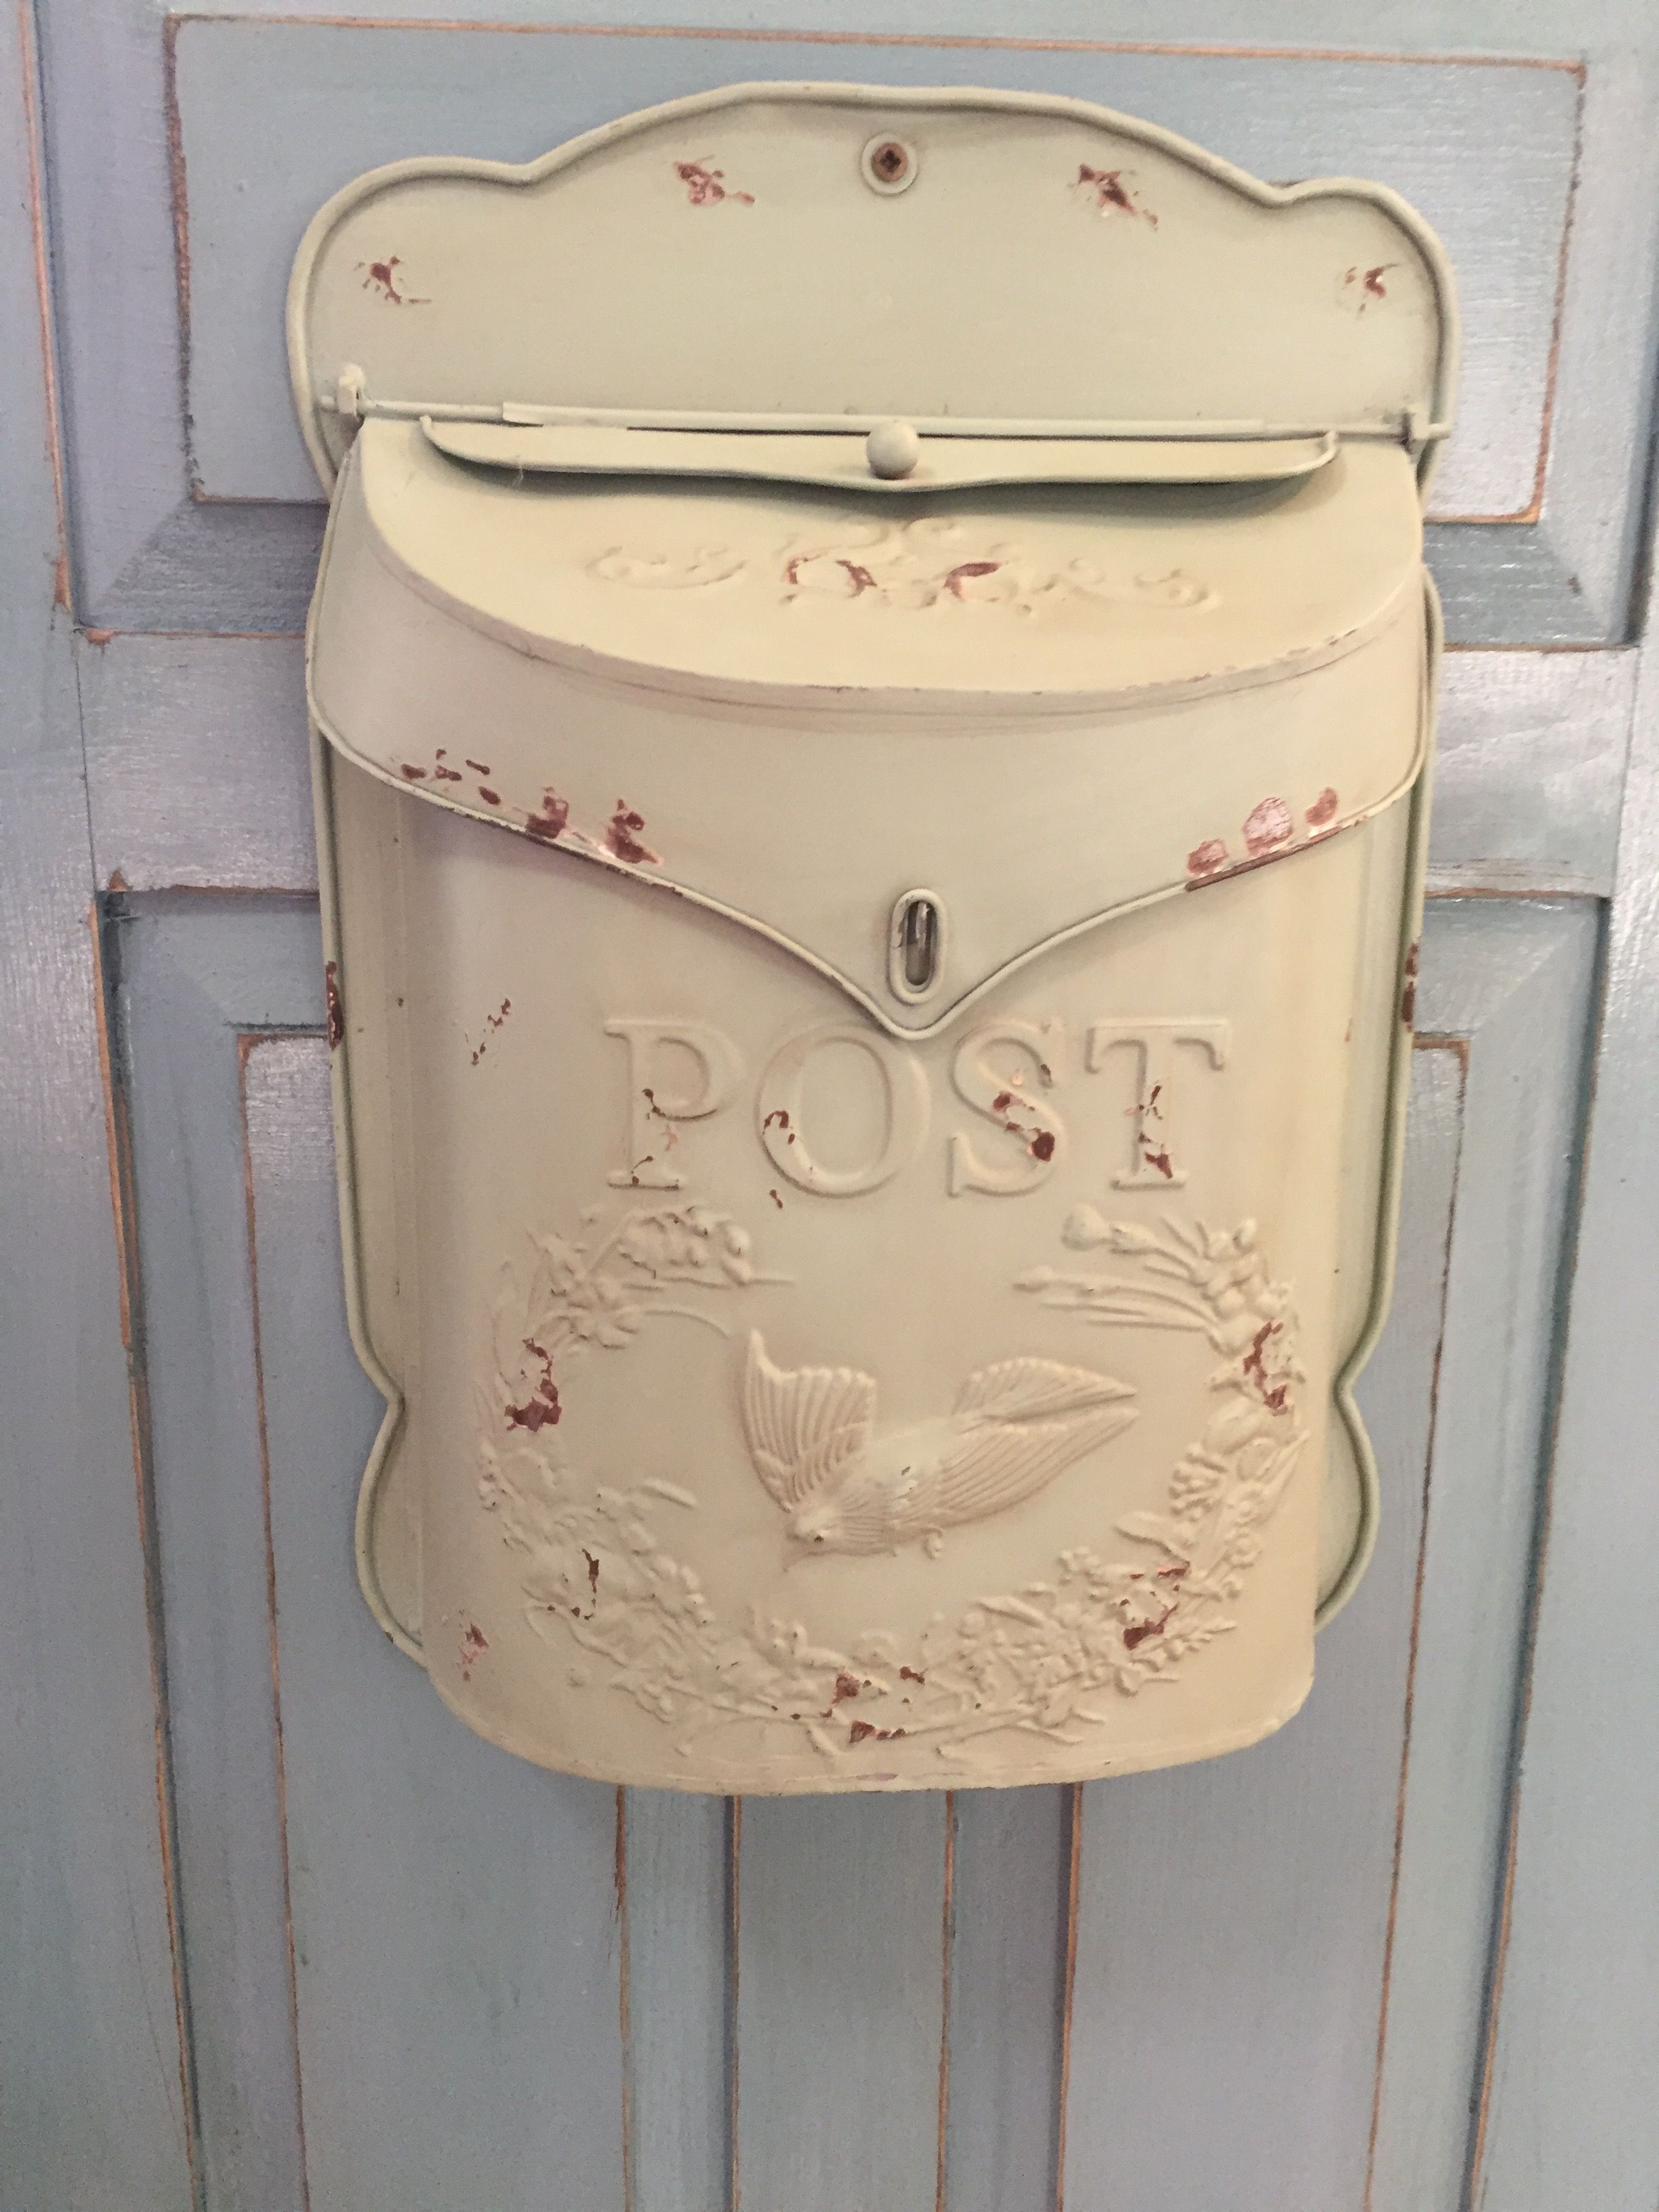 Lacordaire Wall Mounted Mailbox in Recent Reproduction Vintage Mail Box. I Attached This To The Front Of The